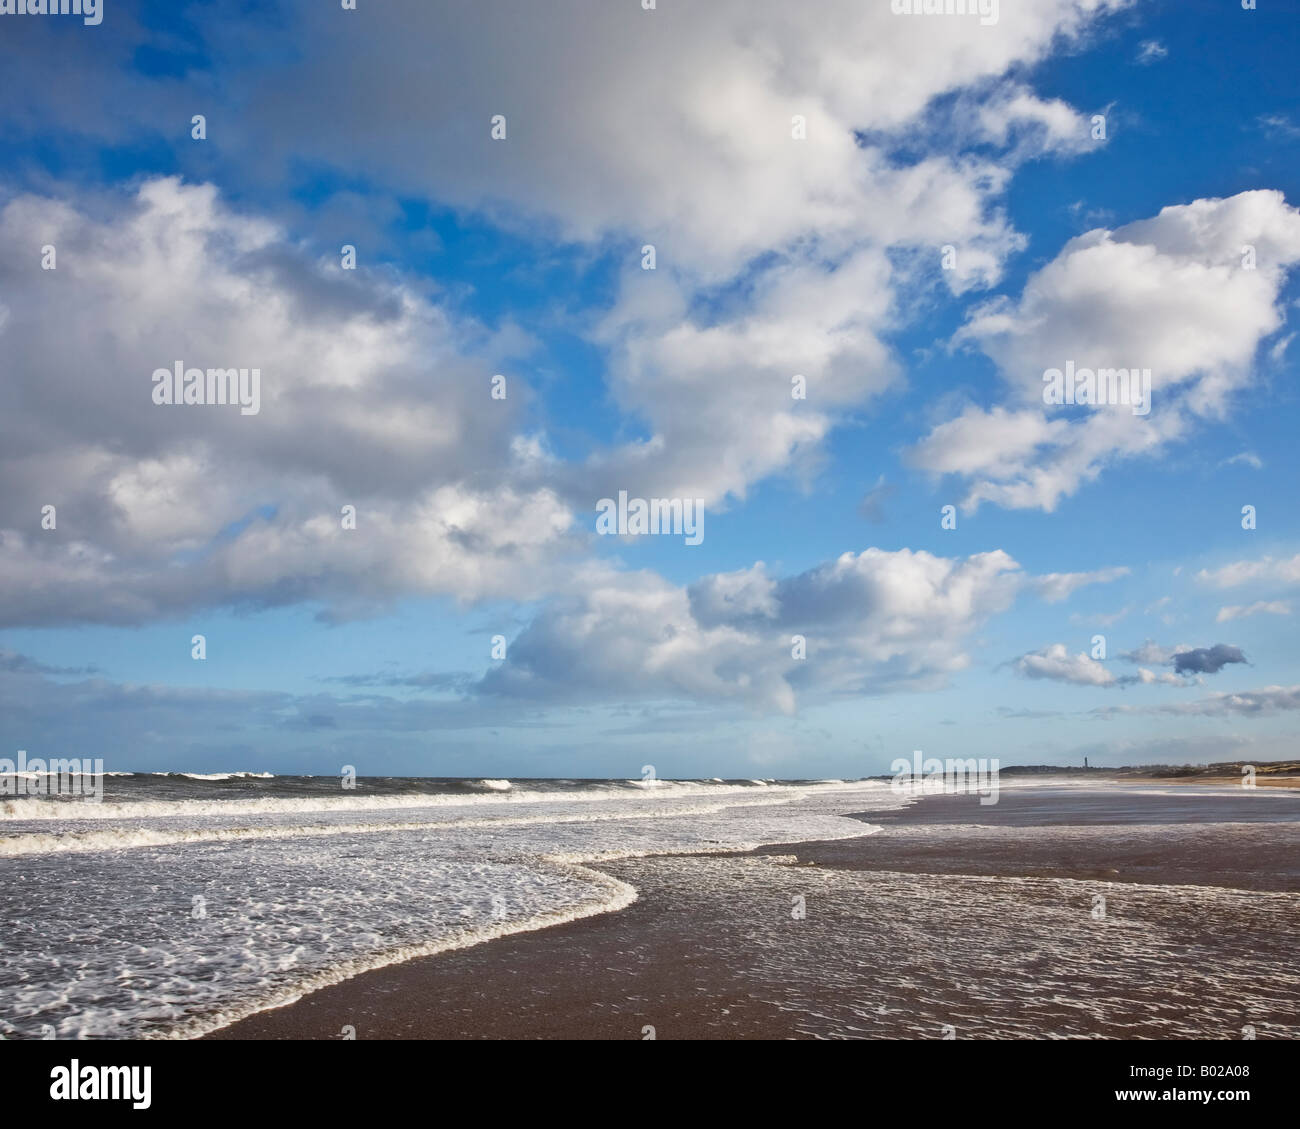 Clouds in a blue sky over the incoming tide on Druridge Bay on the Northumbrian coast, Northumberland, England - Stock Image